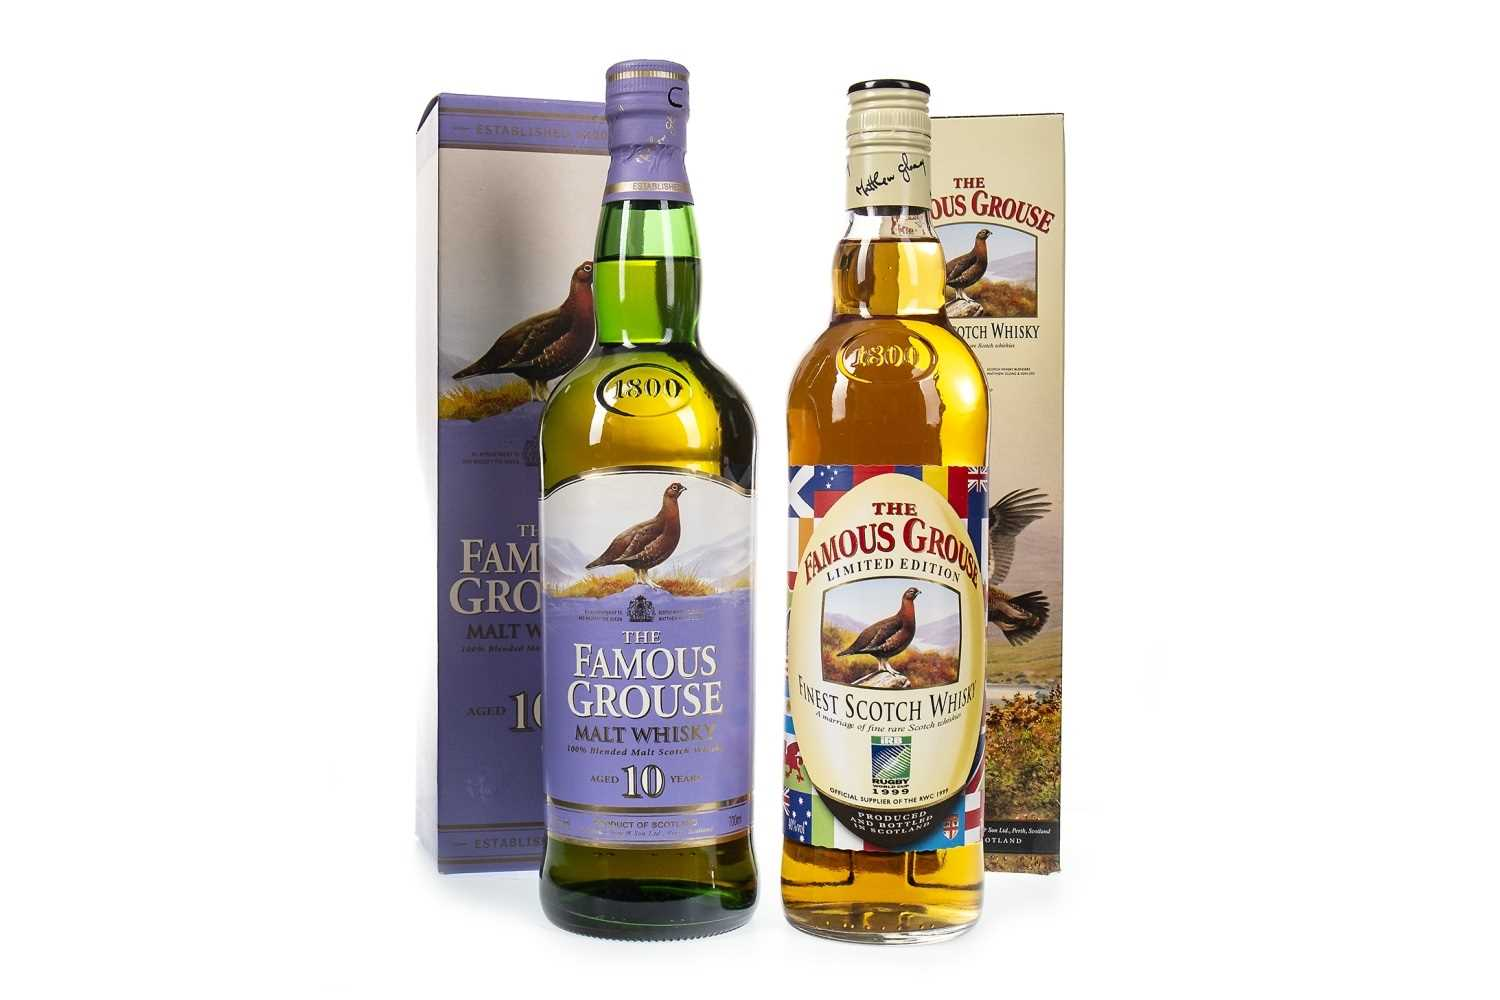 Lot 425-FAMOUS GROUSE MALT AGED 10 YEARS AND FAMOUS GROUSE